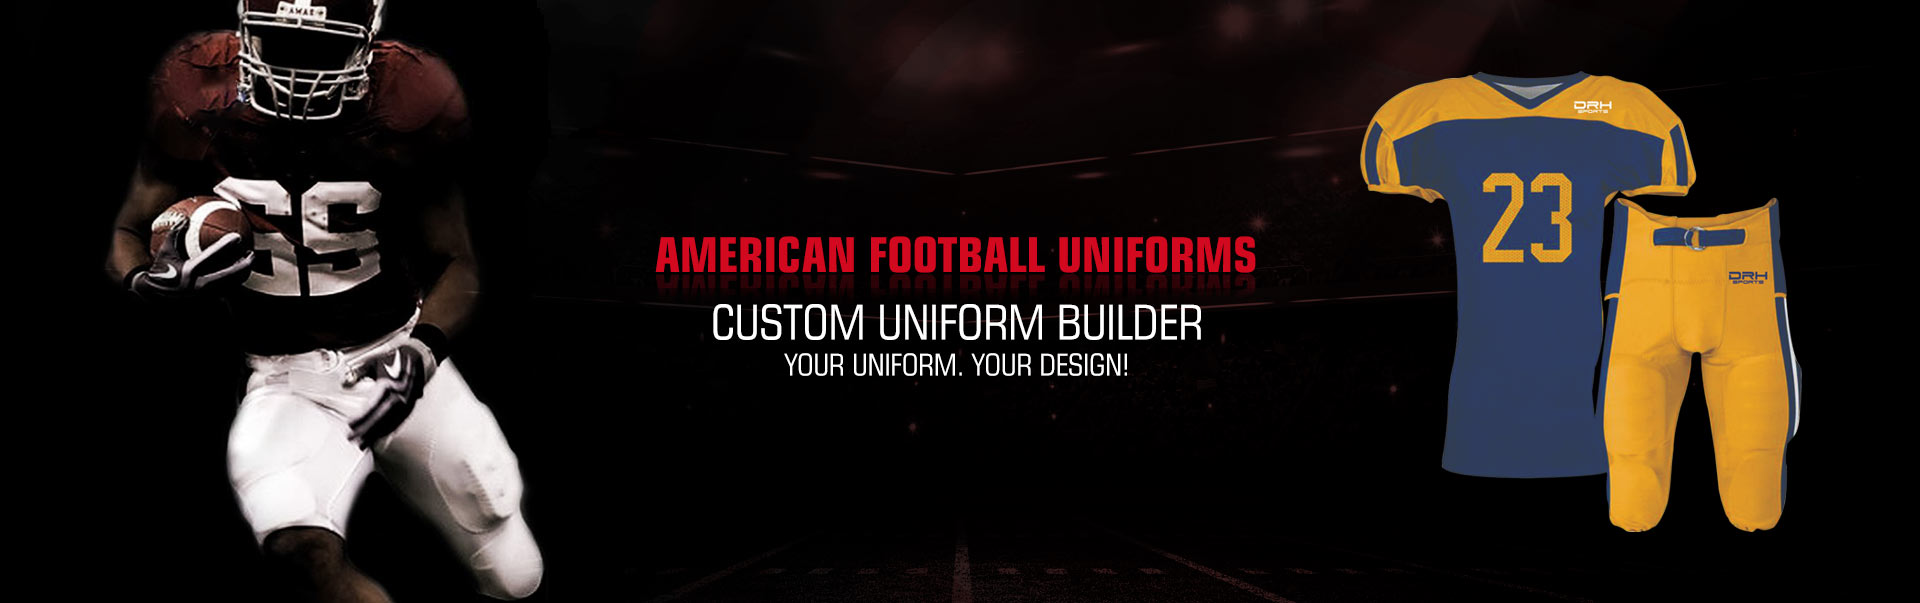 American Football Uniform Wholesaler, Suppliers in Mckinney